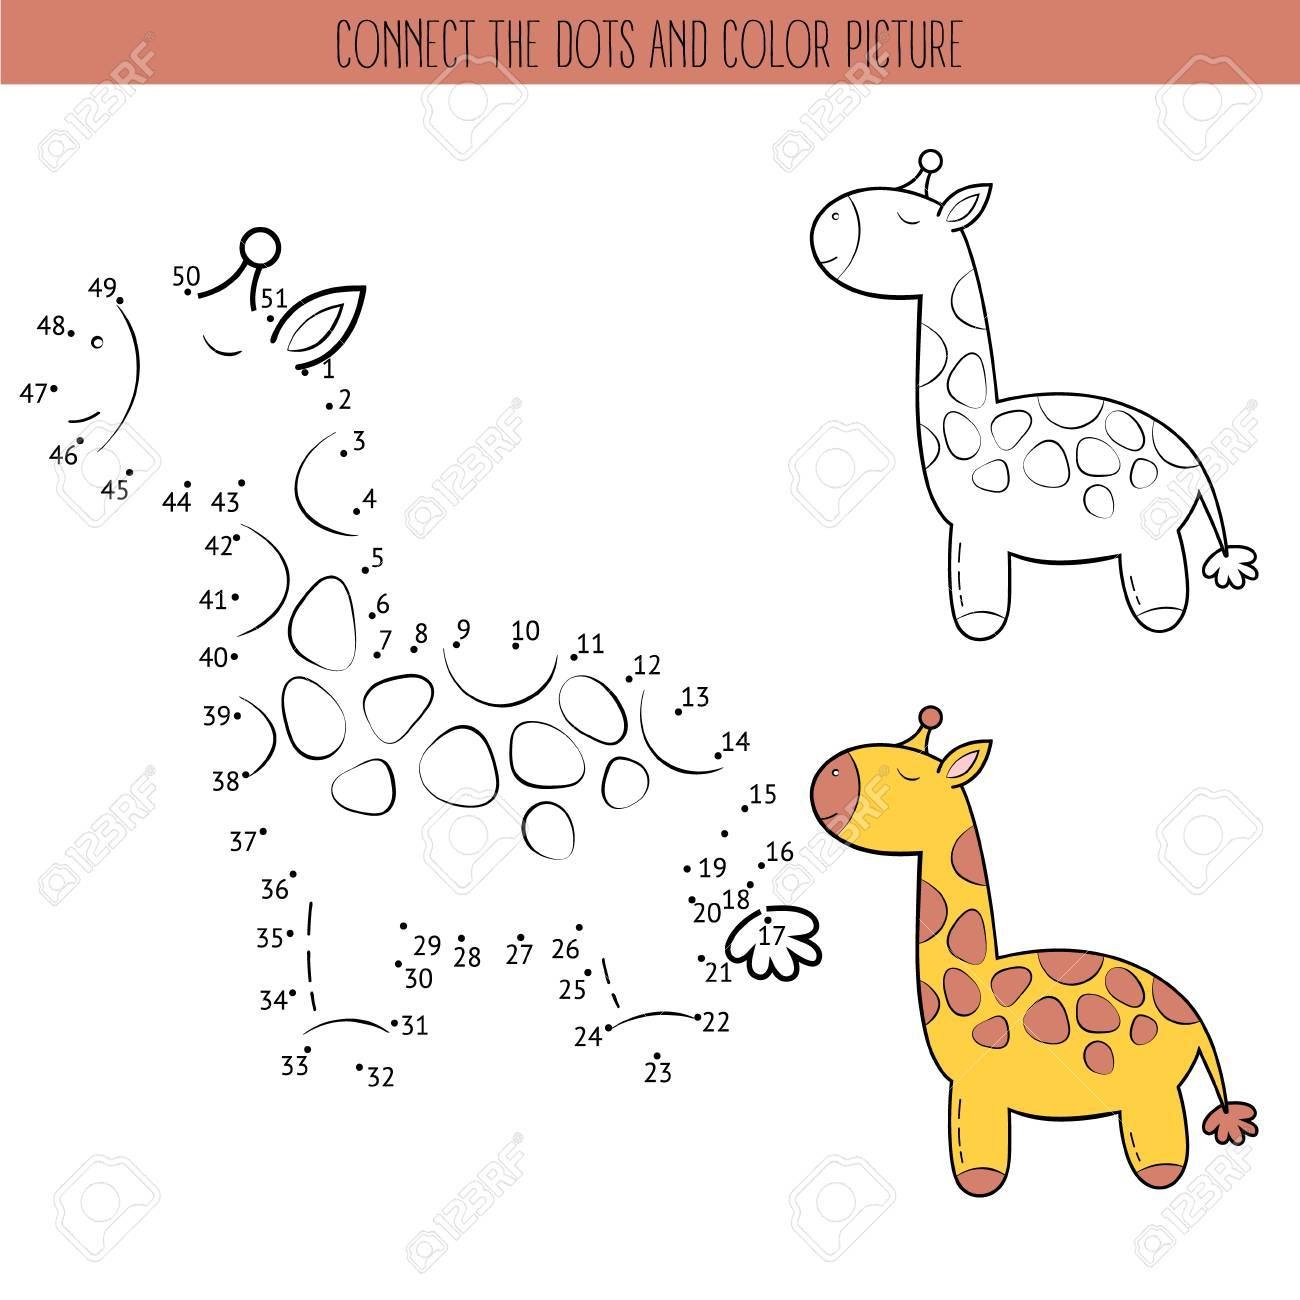 Coloring Book And Dot To Dot Educational Game For Kids Connect